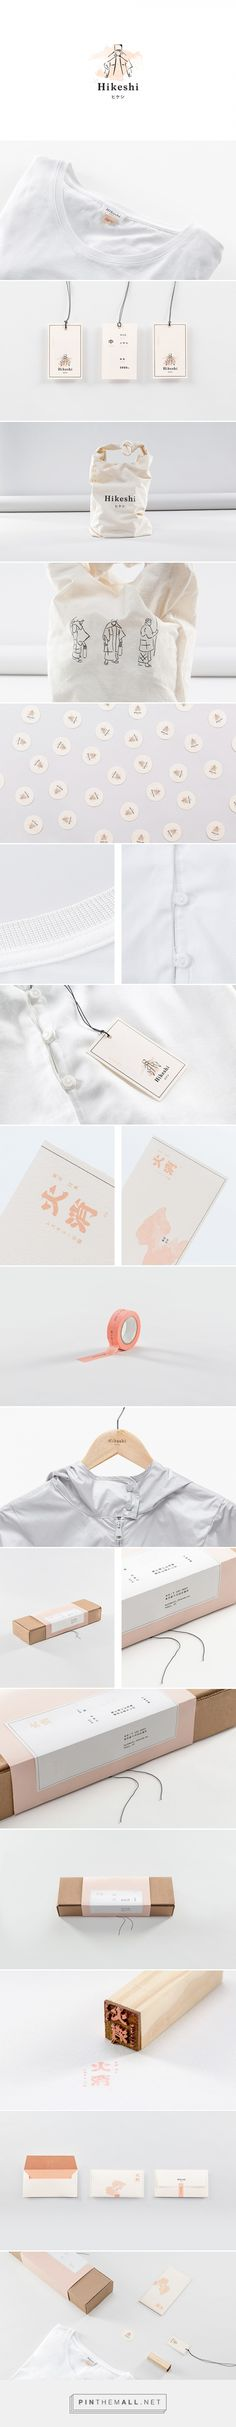 Hikeshi on Behance-https://www.behance.net/gallery/28901827/Hikeshi... - a grouped images picture - Pin Them All